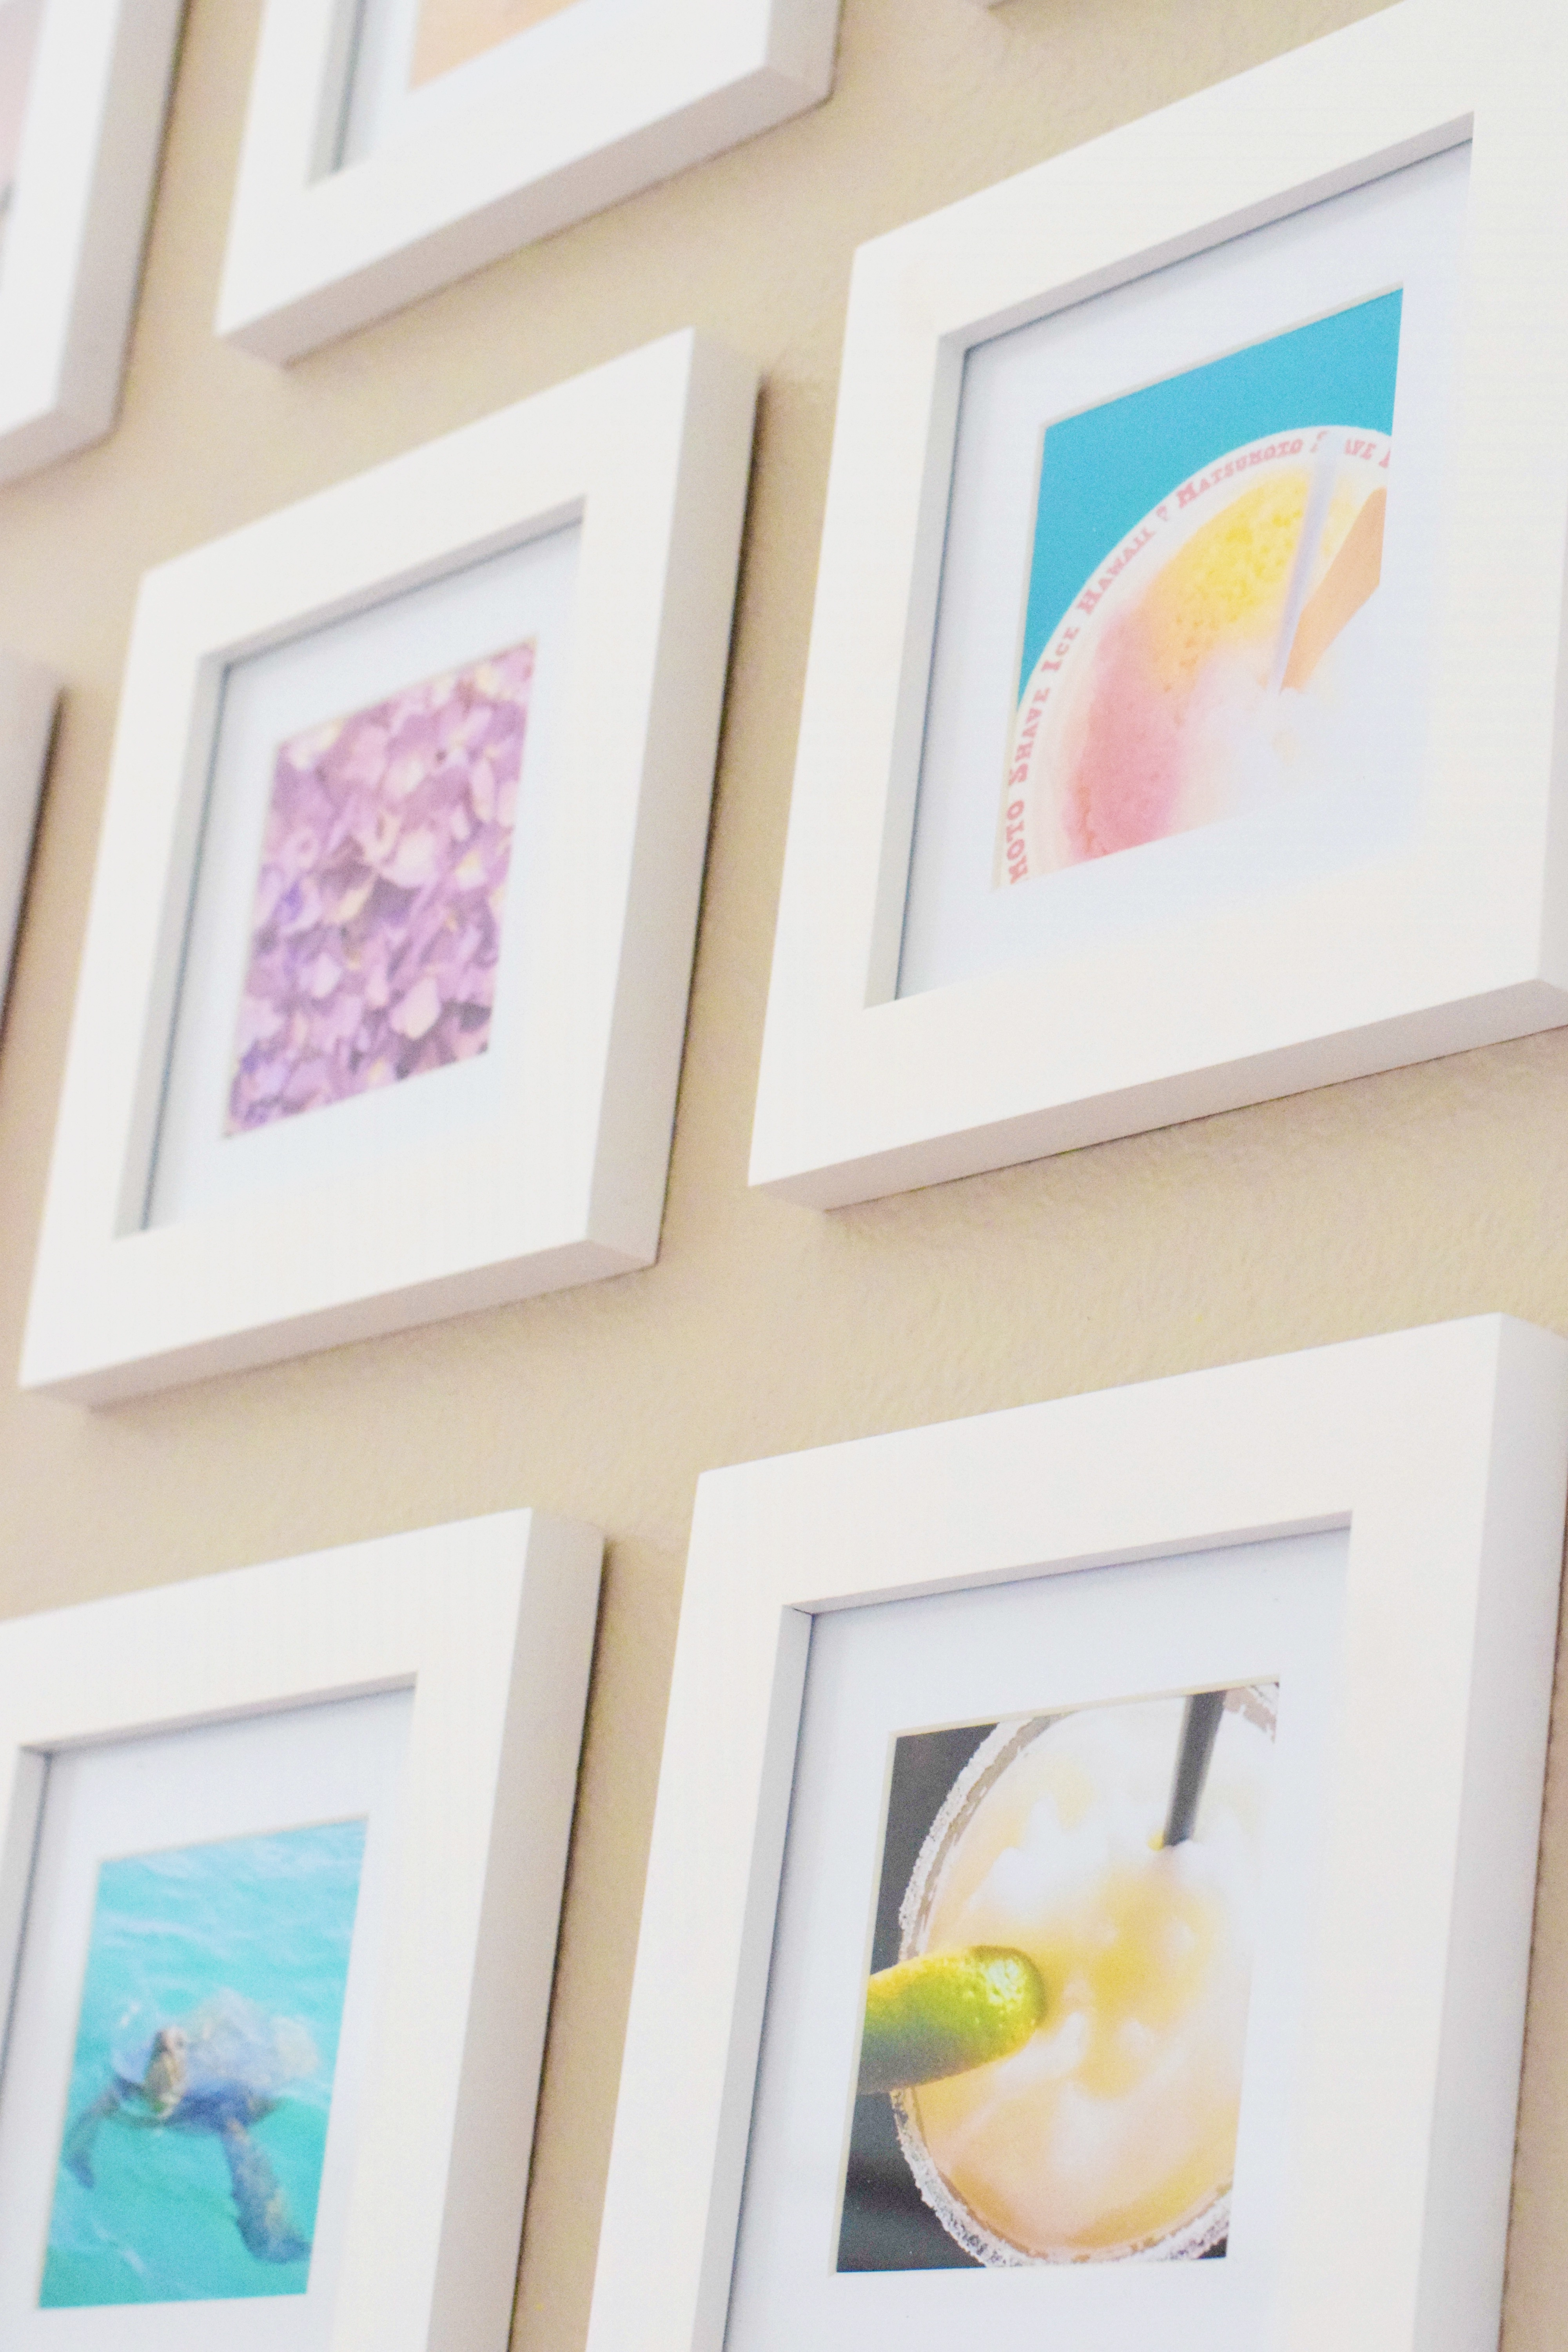 DIY Instagram Wall - an easy afternoon project that showcases all your favorite snaps!